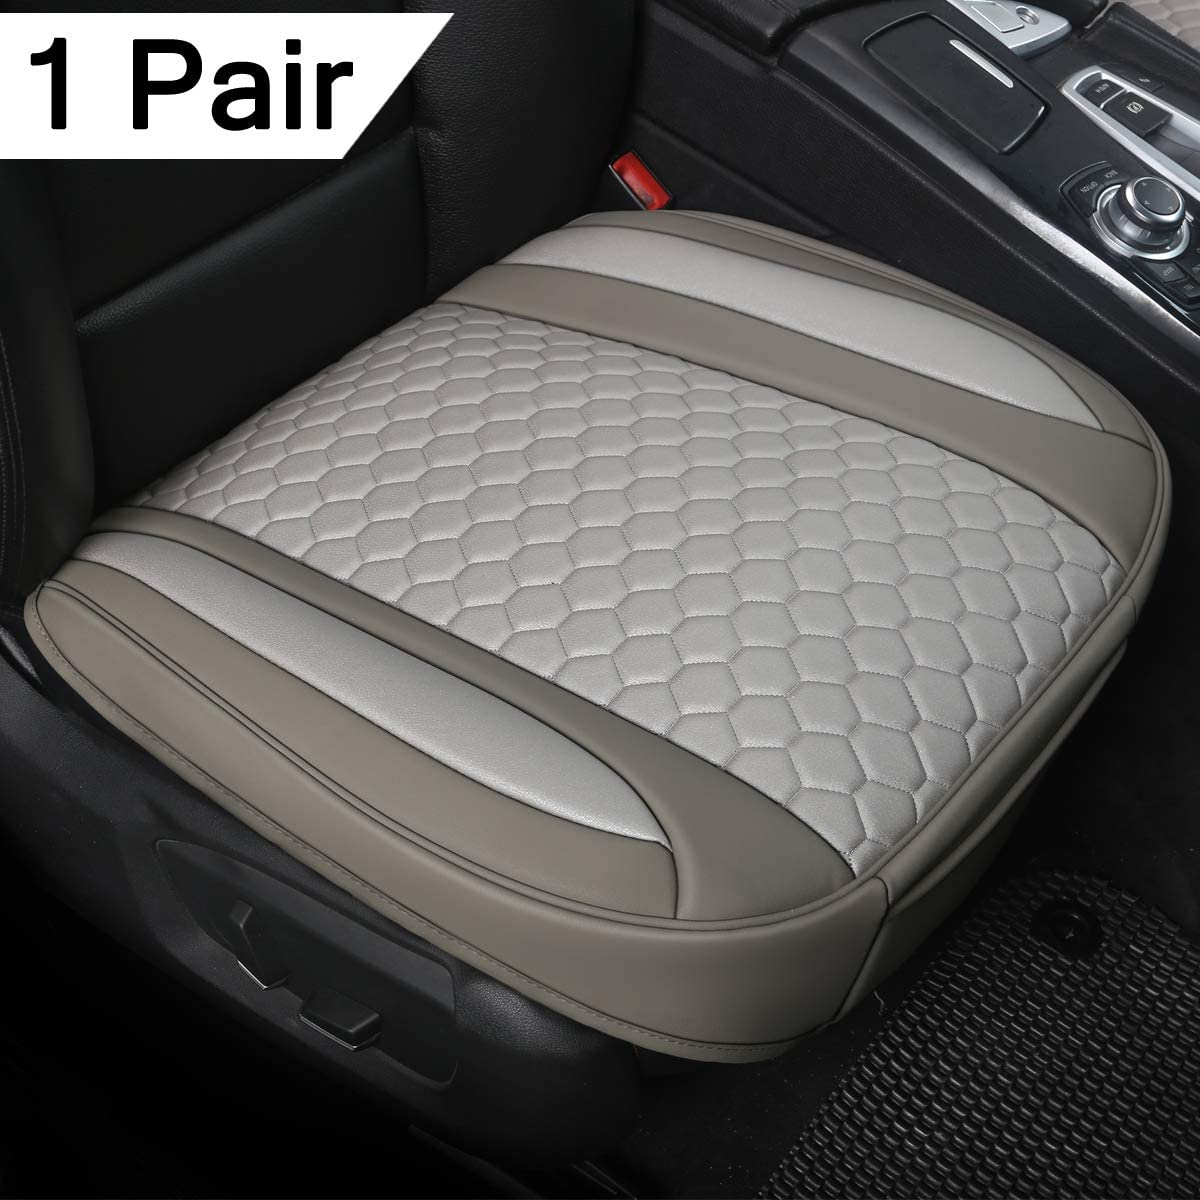 Black Panther 1 Pair Luxury PU Leather Car Seat Covesr for Front Seats Mixed Beige Bottom 21.26/×20.86 Inches ,Compatible with 90/% Vehicles